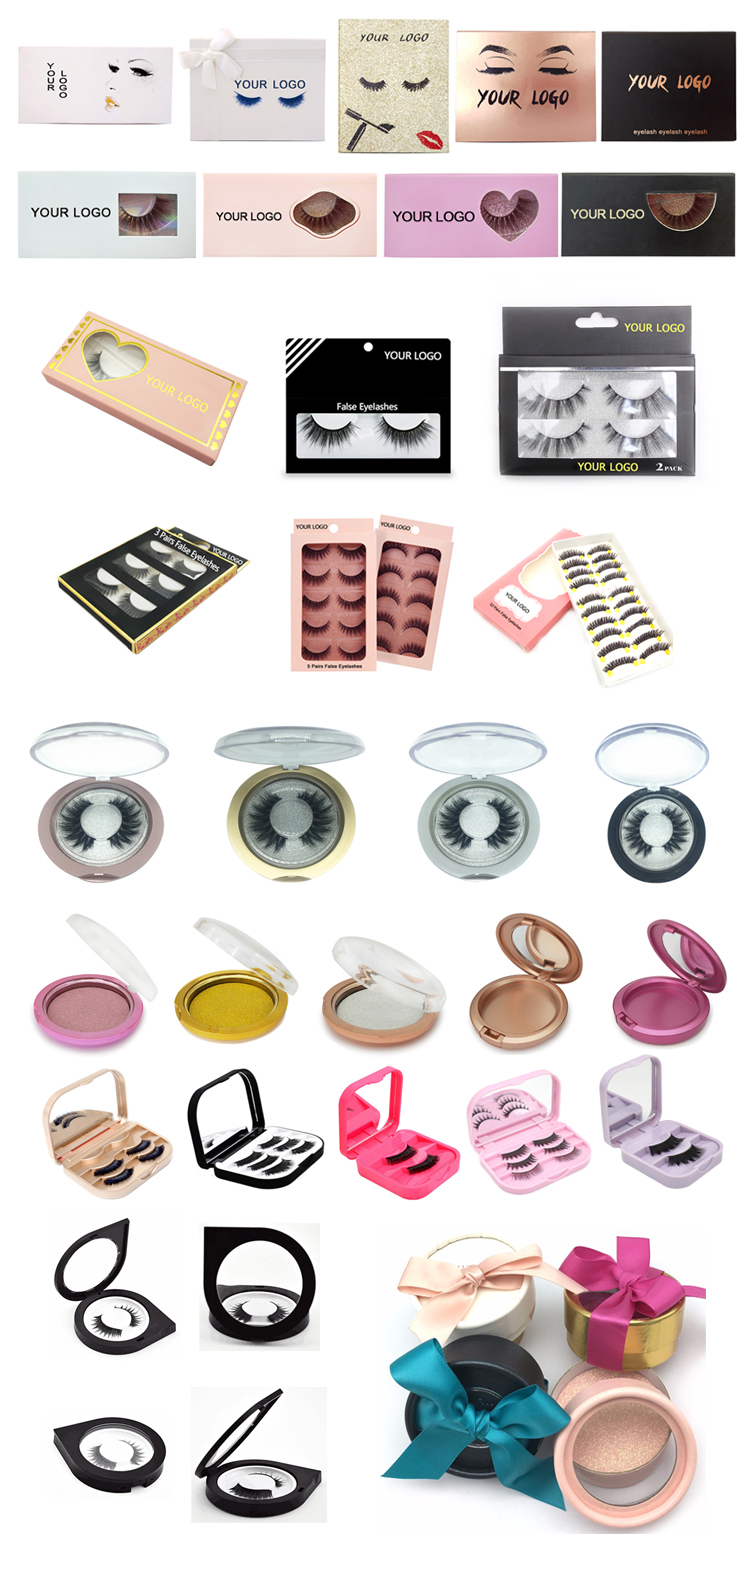 Eyelash-box-new.jpg